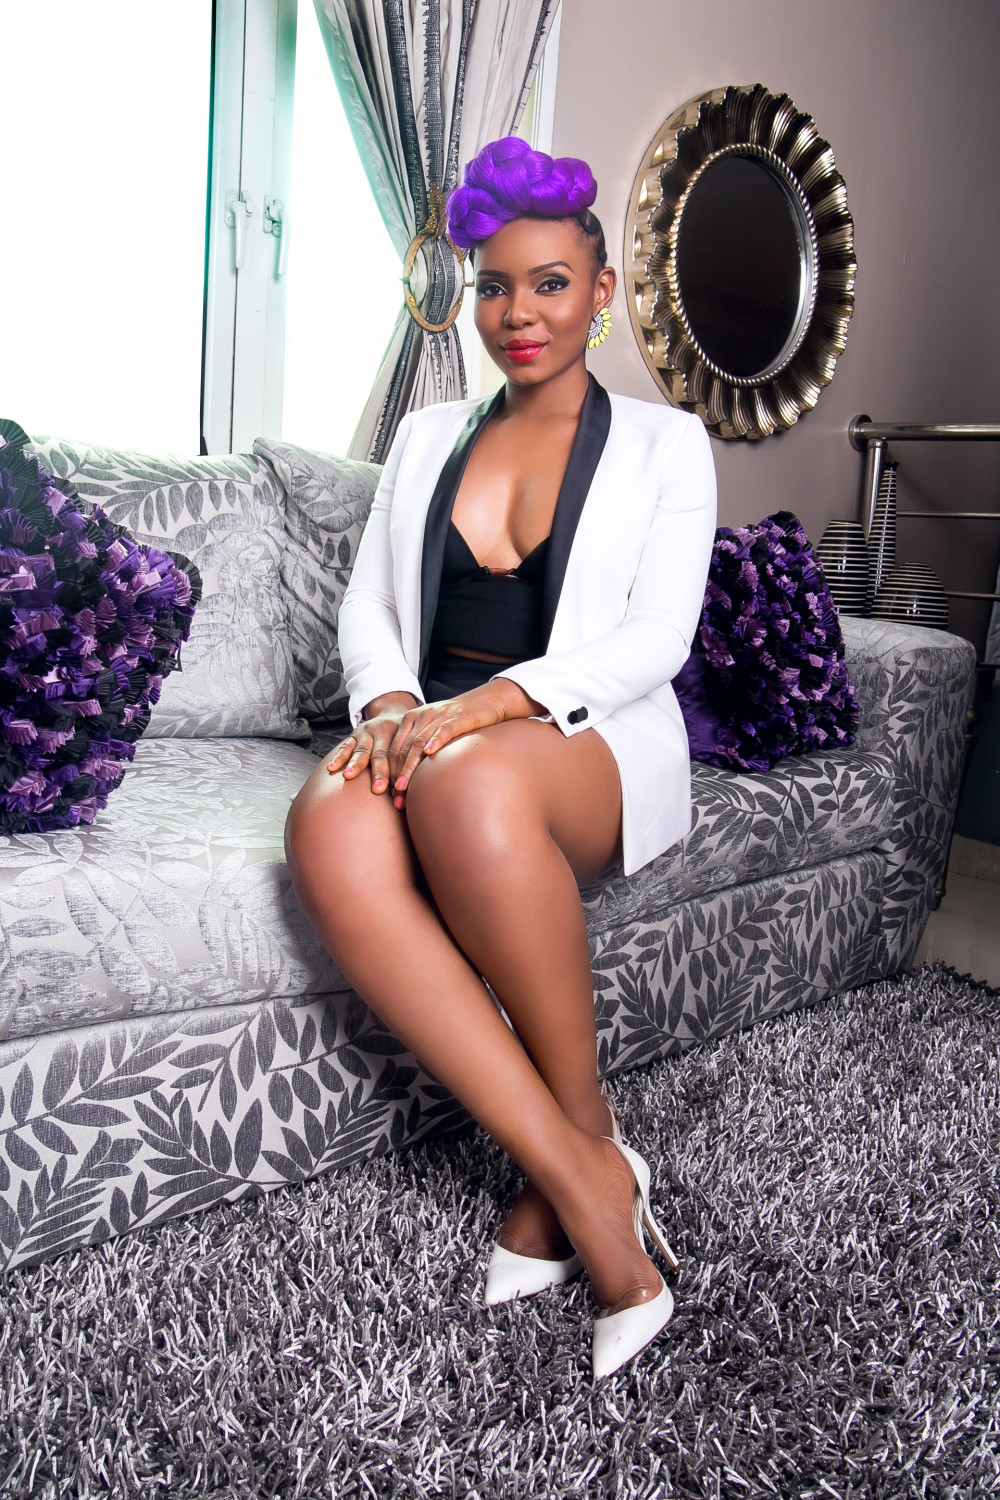 african love dating and singles Interested in dating handsome black men or beautiful asian women you've come to the right place hundreds of friendships and love connections are happening every day whether you're looking for friendship or a serious relationship, our sophisticated matching system helps you find exactly what you're looking for.